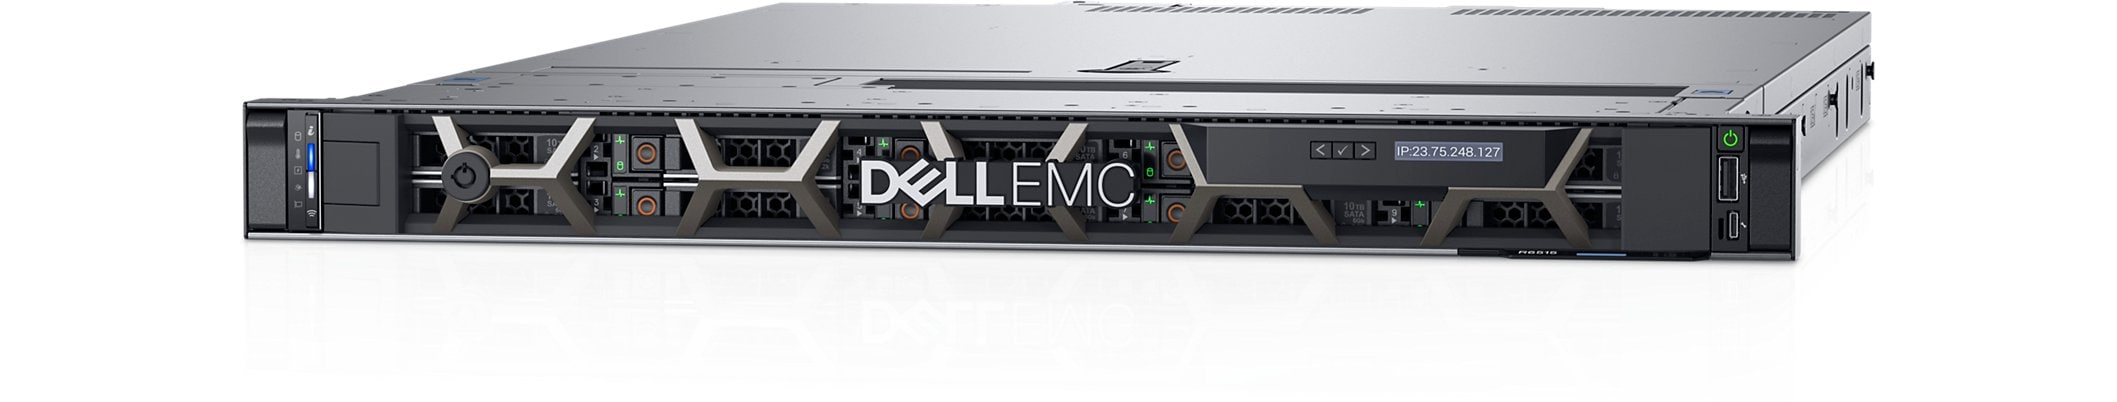 PowerEdge R6515